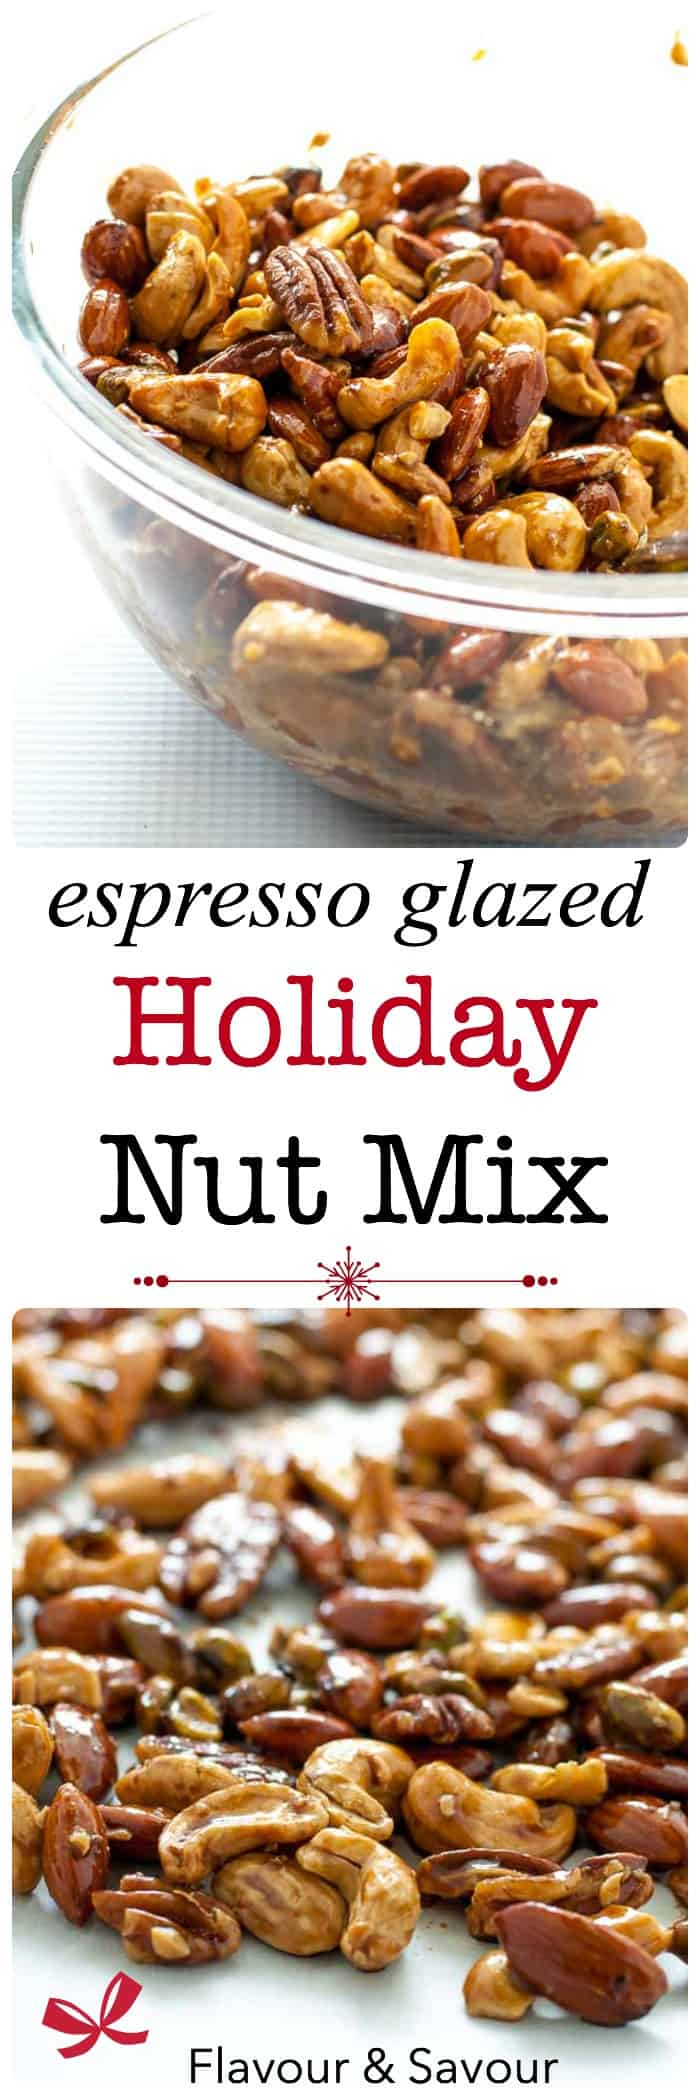 Make this easy 4-ingredient Espresso Glazed Holiday Nut Mix as gifts for friends and family, or just devour it yourself!